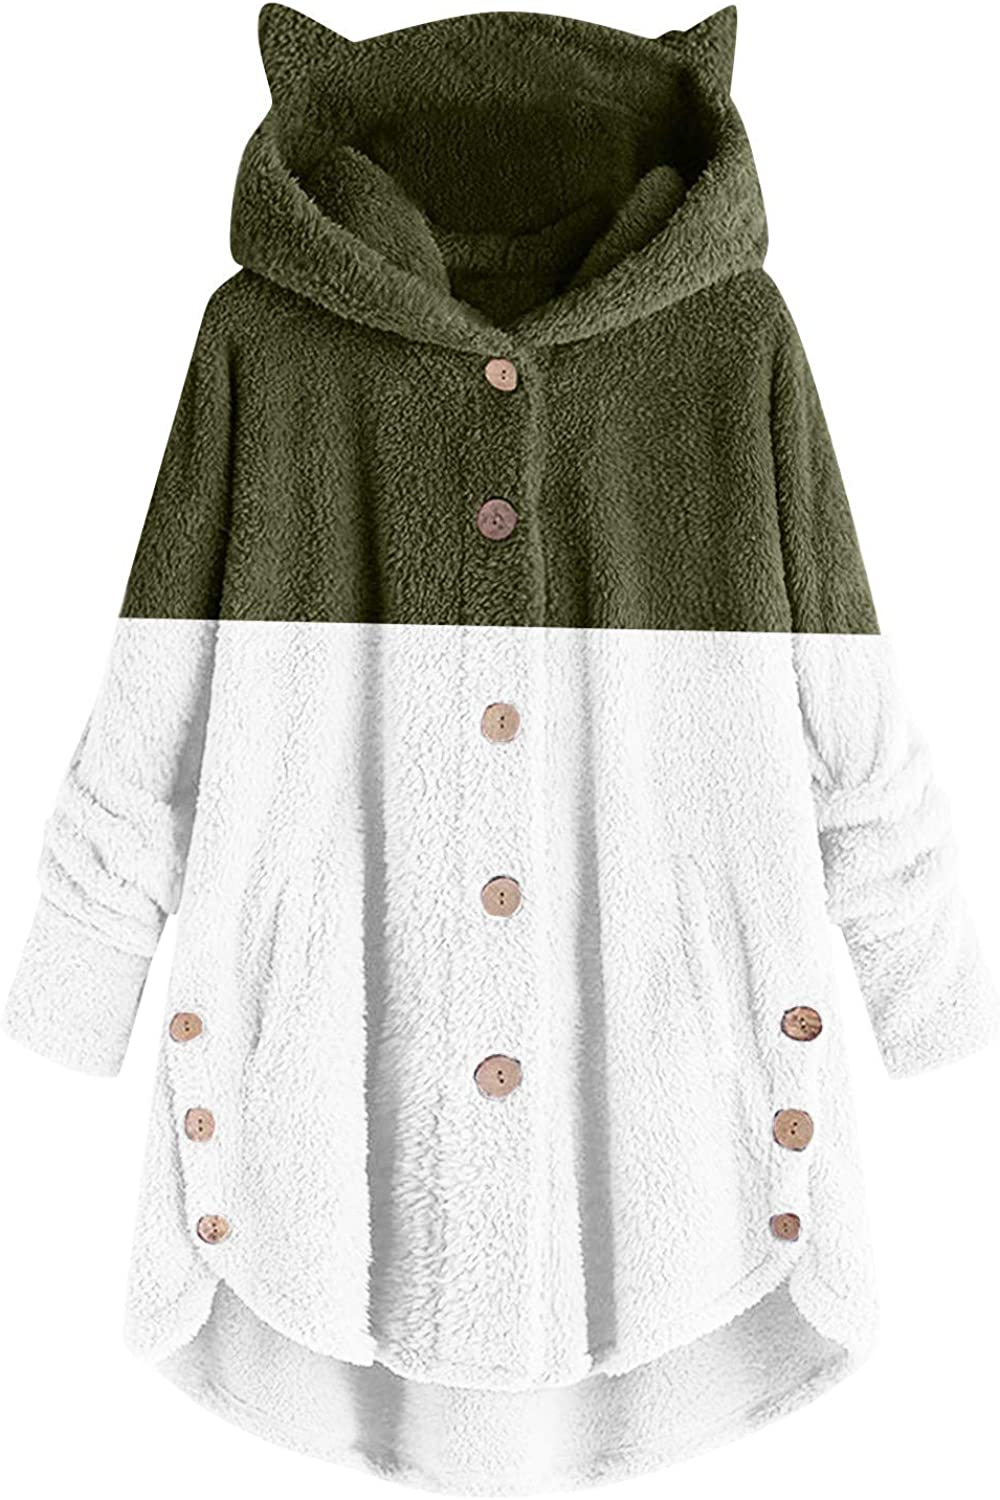 HGWXX7 Womens Jacket Cute Buttons Down Faux Fur Cat Ear Hoodies Long Sleeve Plus Size Winter Coat with Pocket Army Green